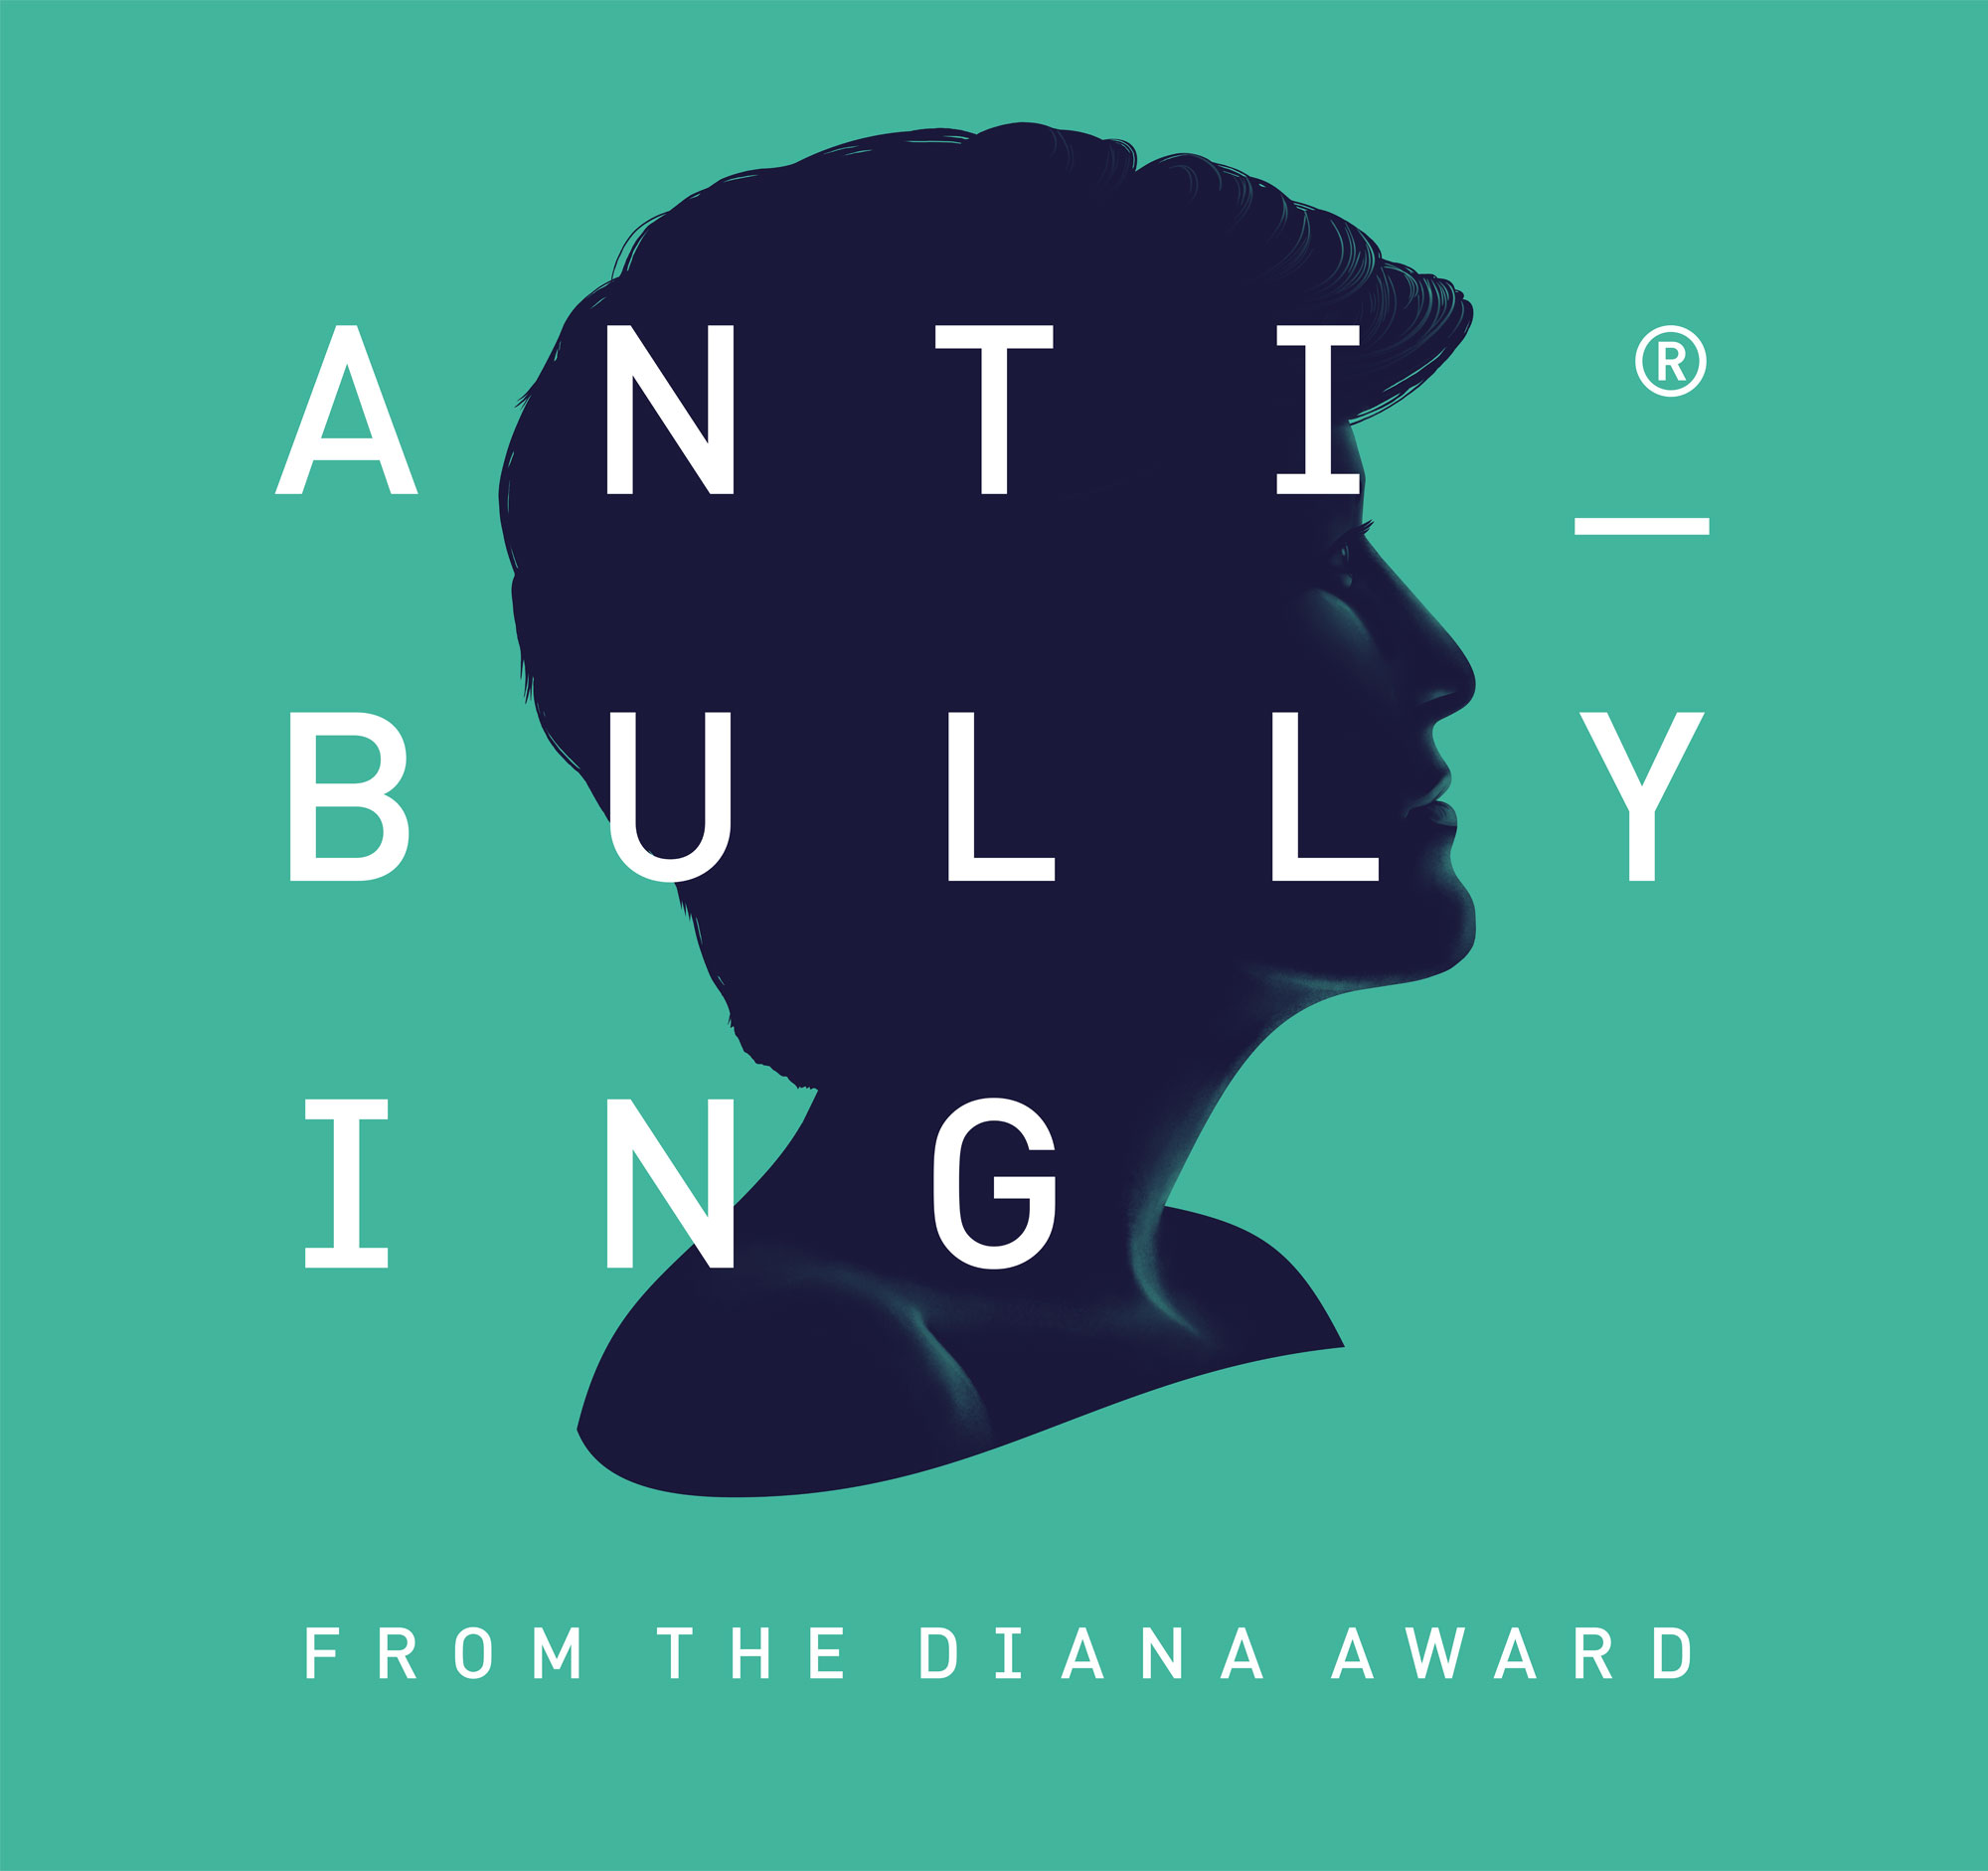 Anti-Bullying Ambassador Resources